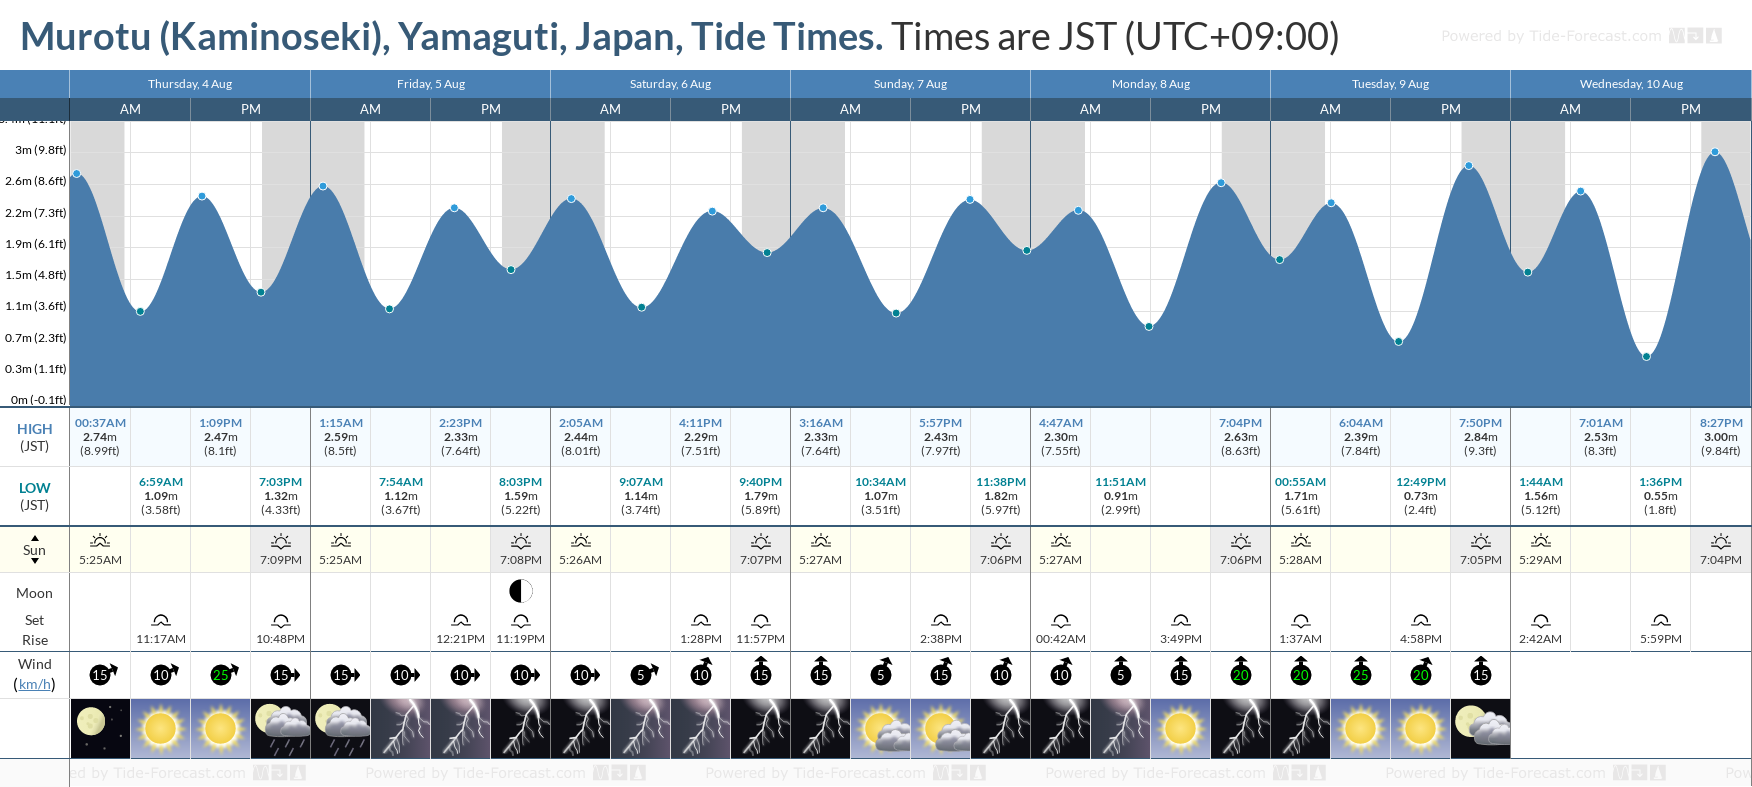 Murotu (Kaminoseki), Yamaguti, Japan Tide Chart including high and low tide tide times for the next 7 days